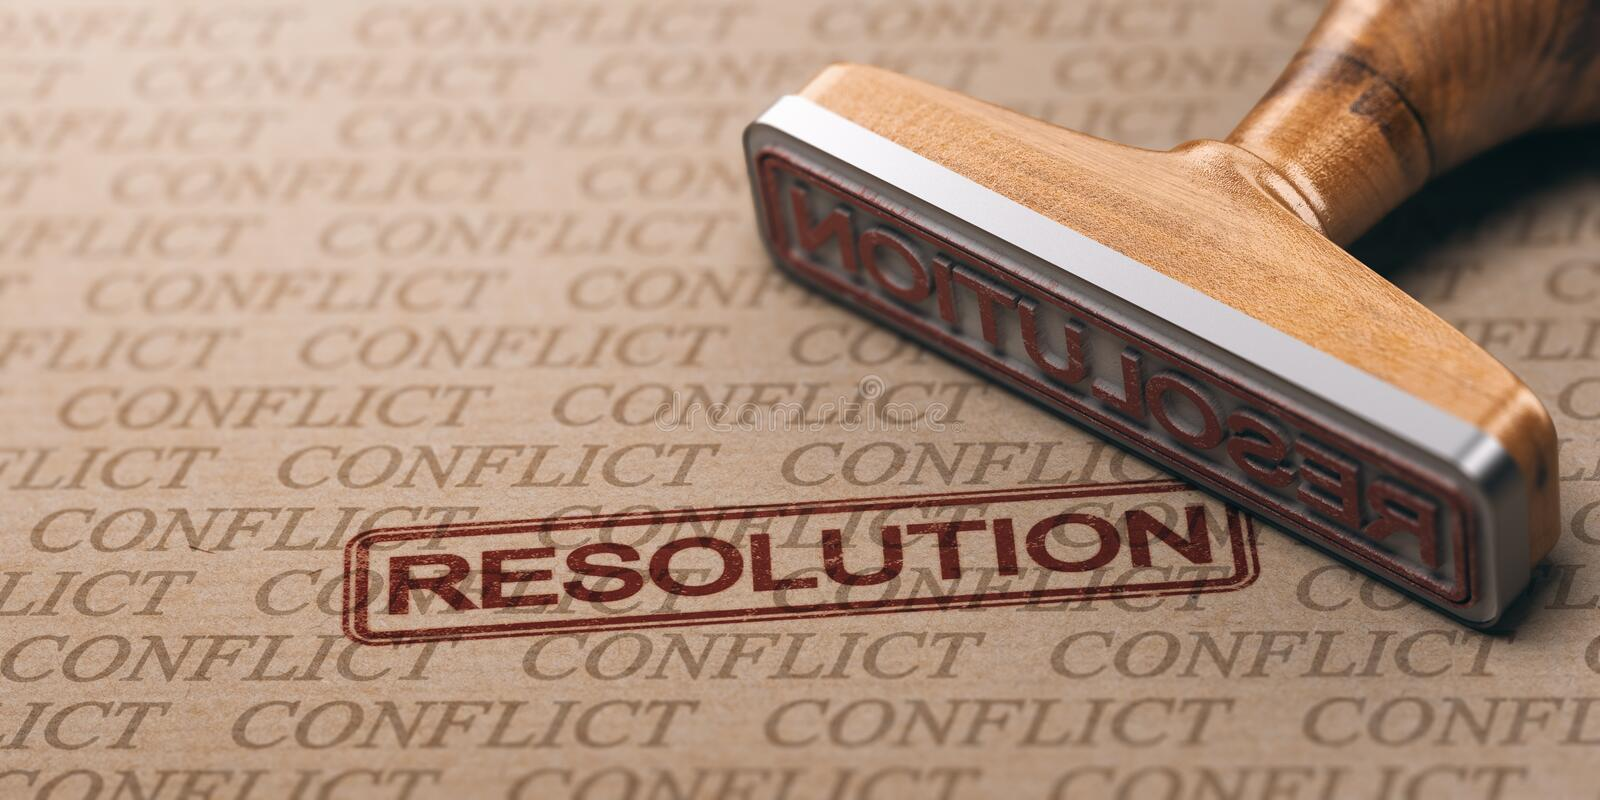 Conflict resolution concept, rubber stamp and word printed royalty free illustration